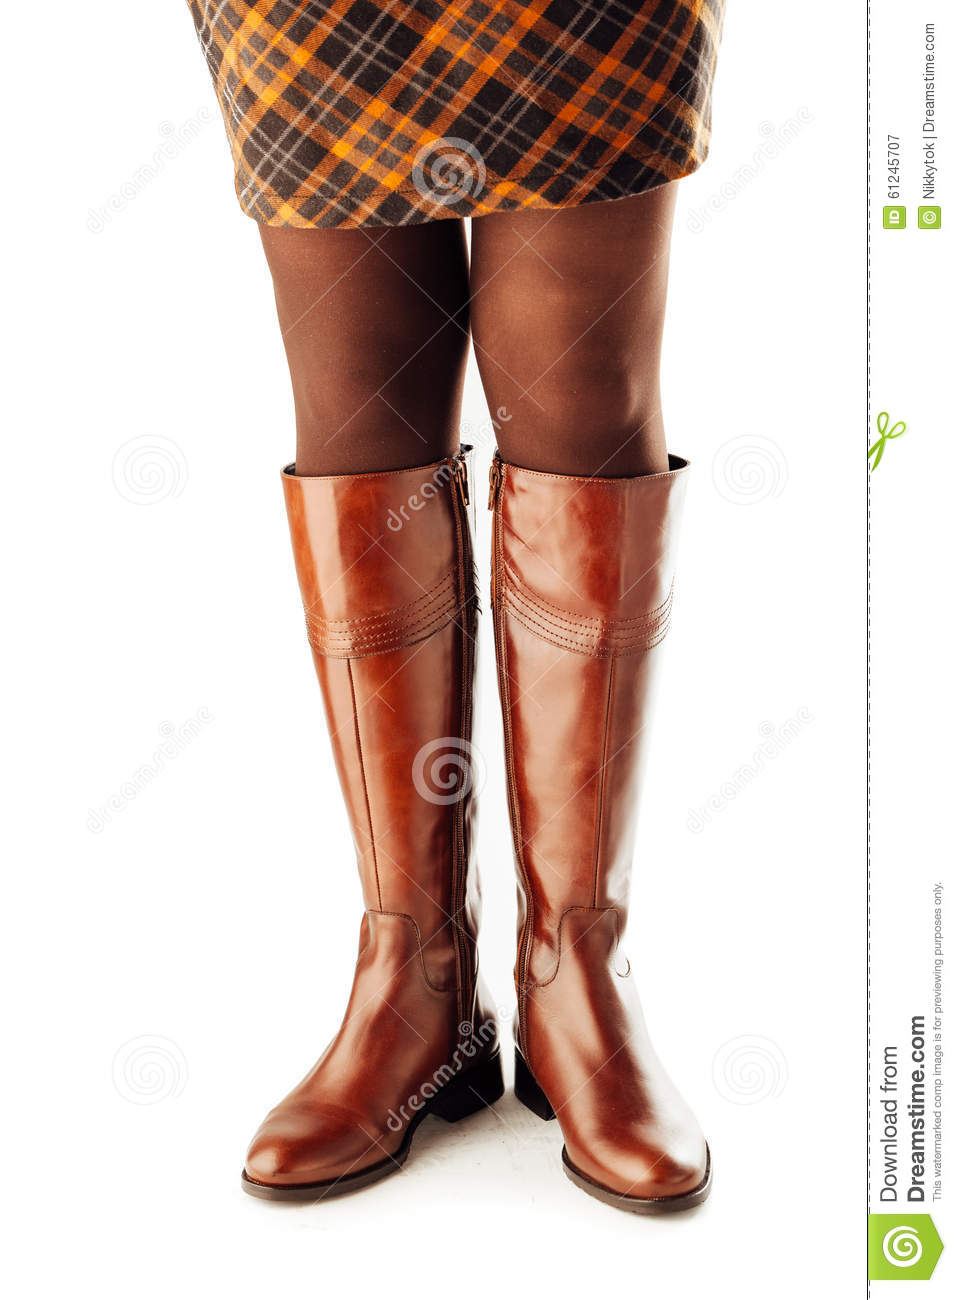 Woman Legs Wearing Brown Leather High Boots Stock Image Image Of